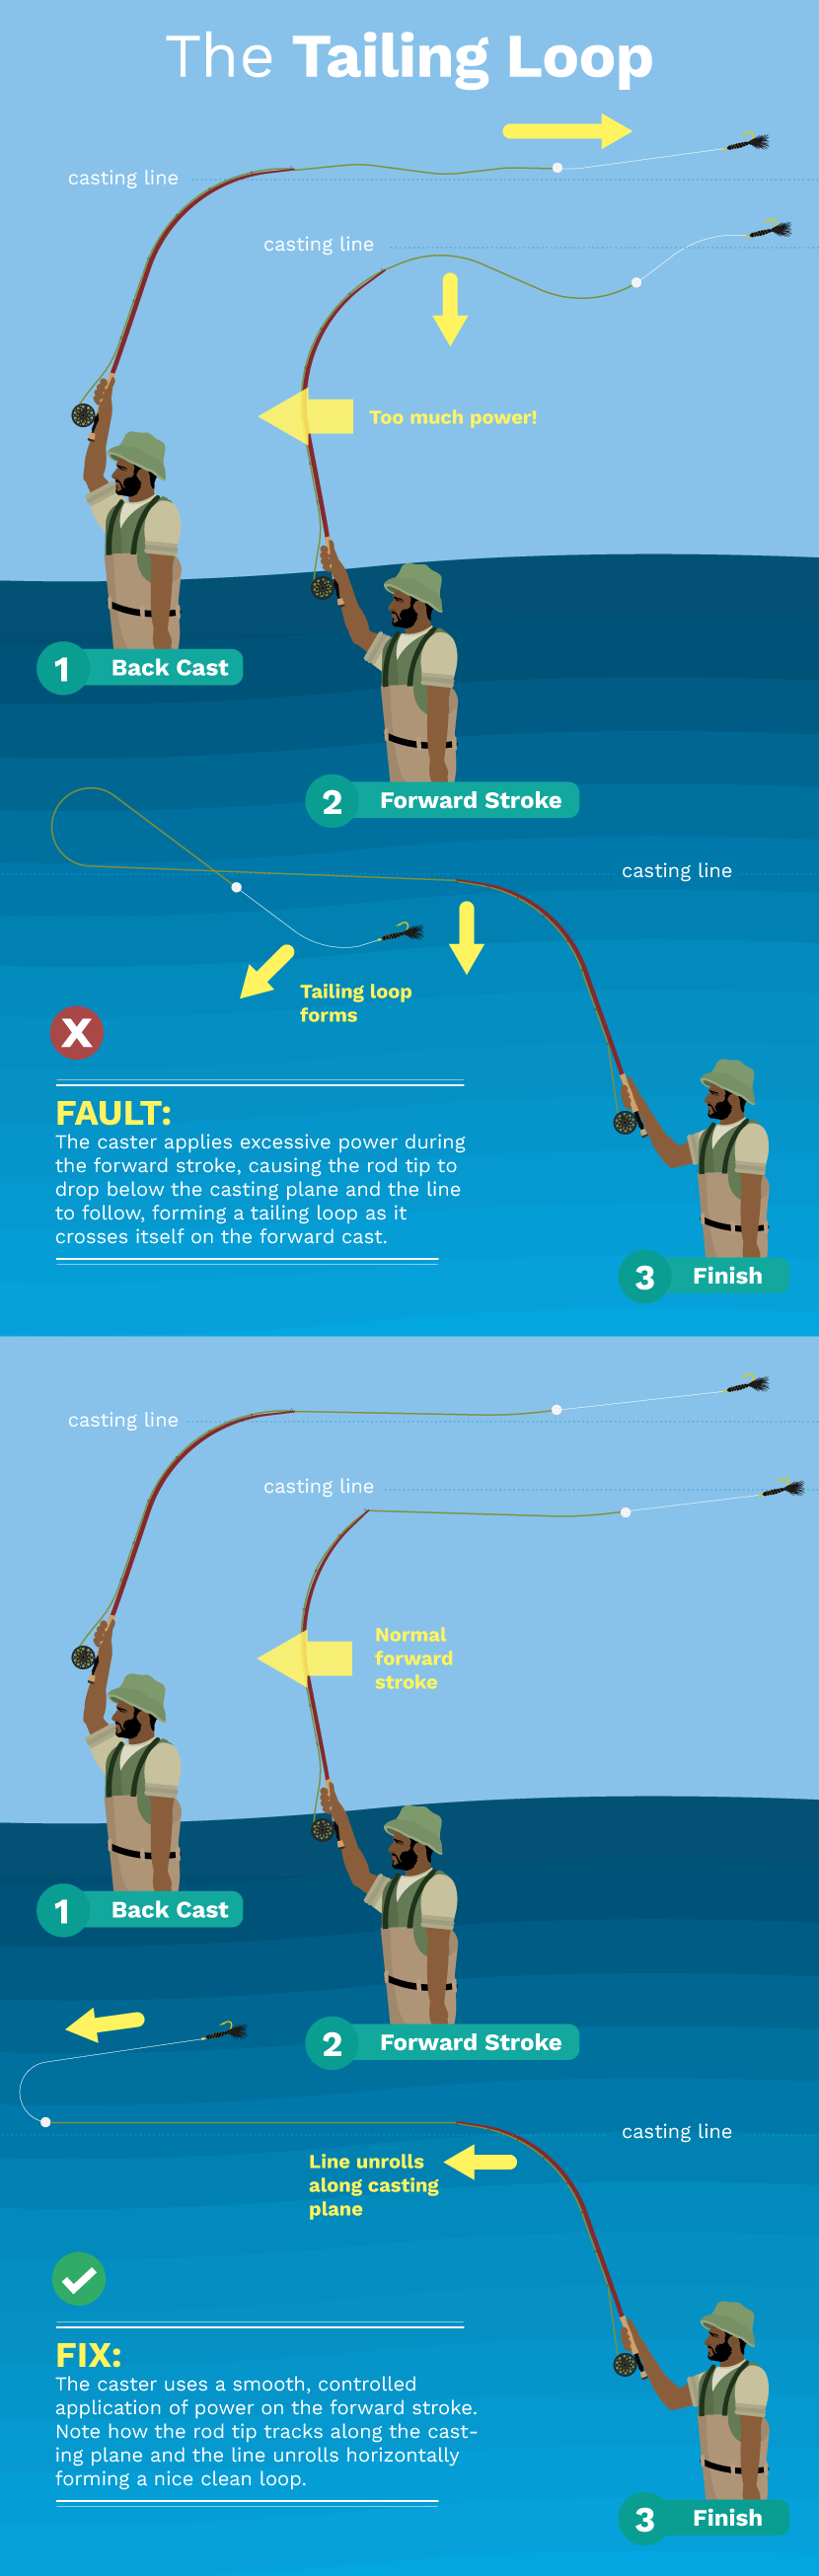 Green Car Guide - Fly Fishing Faults and Fixes